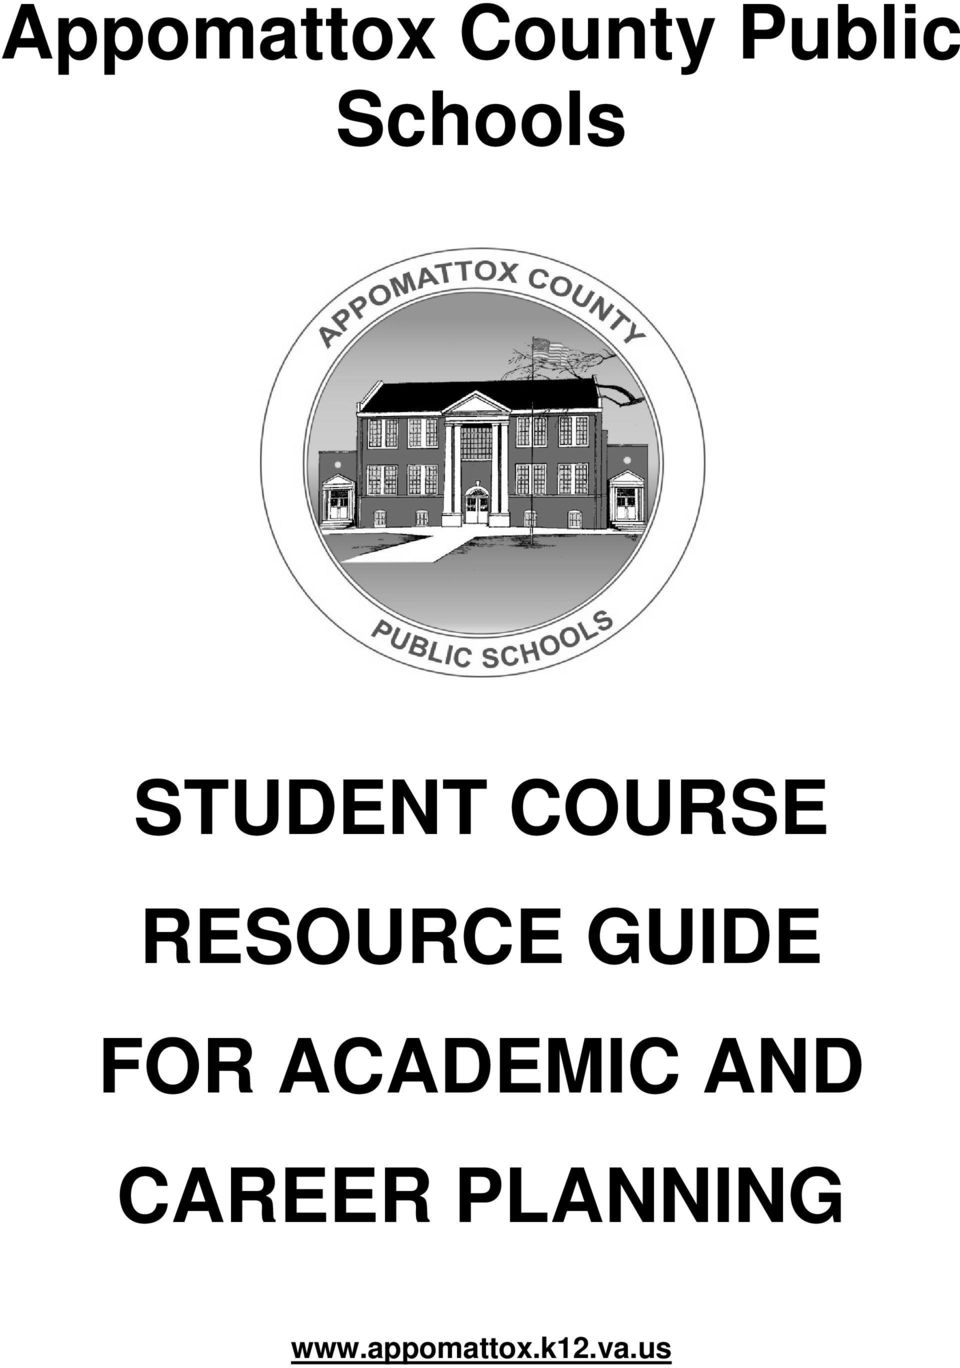 RESOURCE GUIDE FOR ACADEMIC